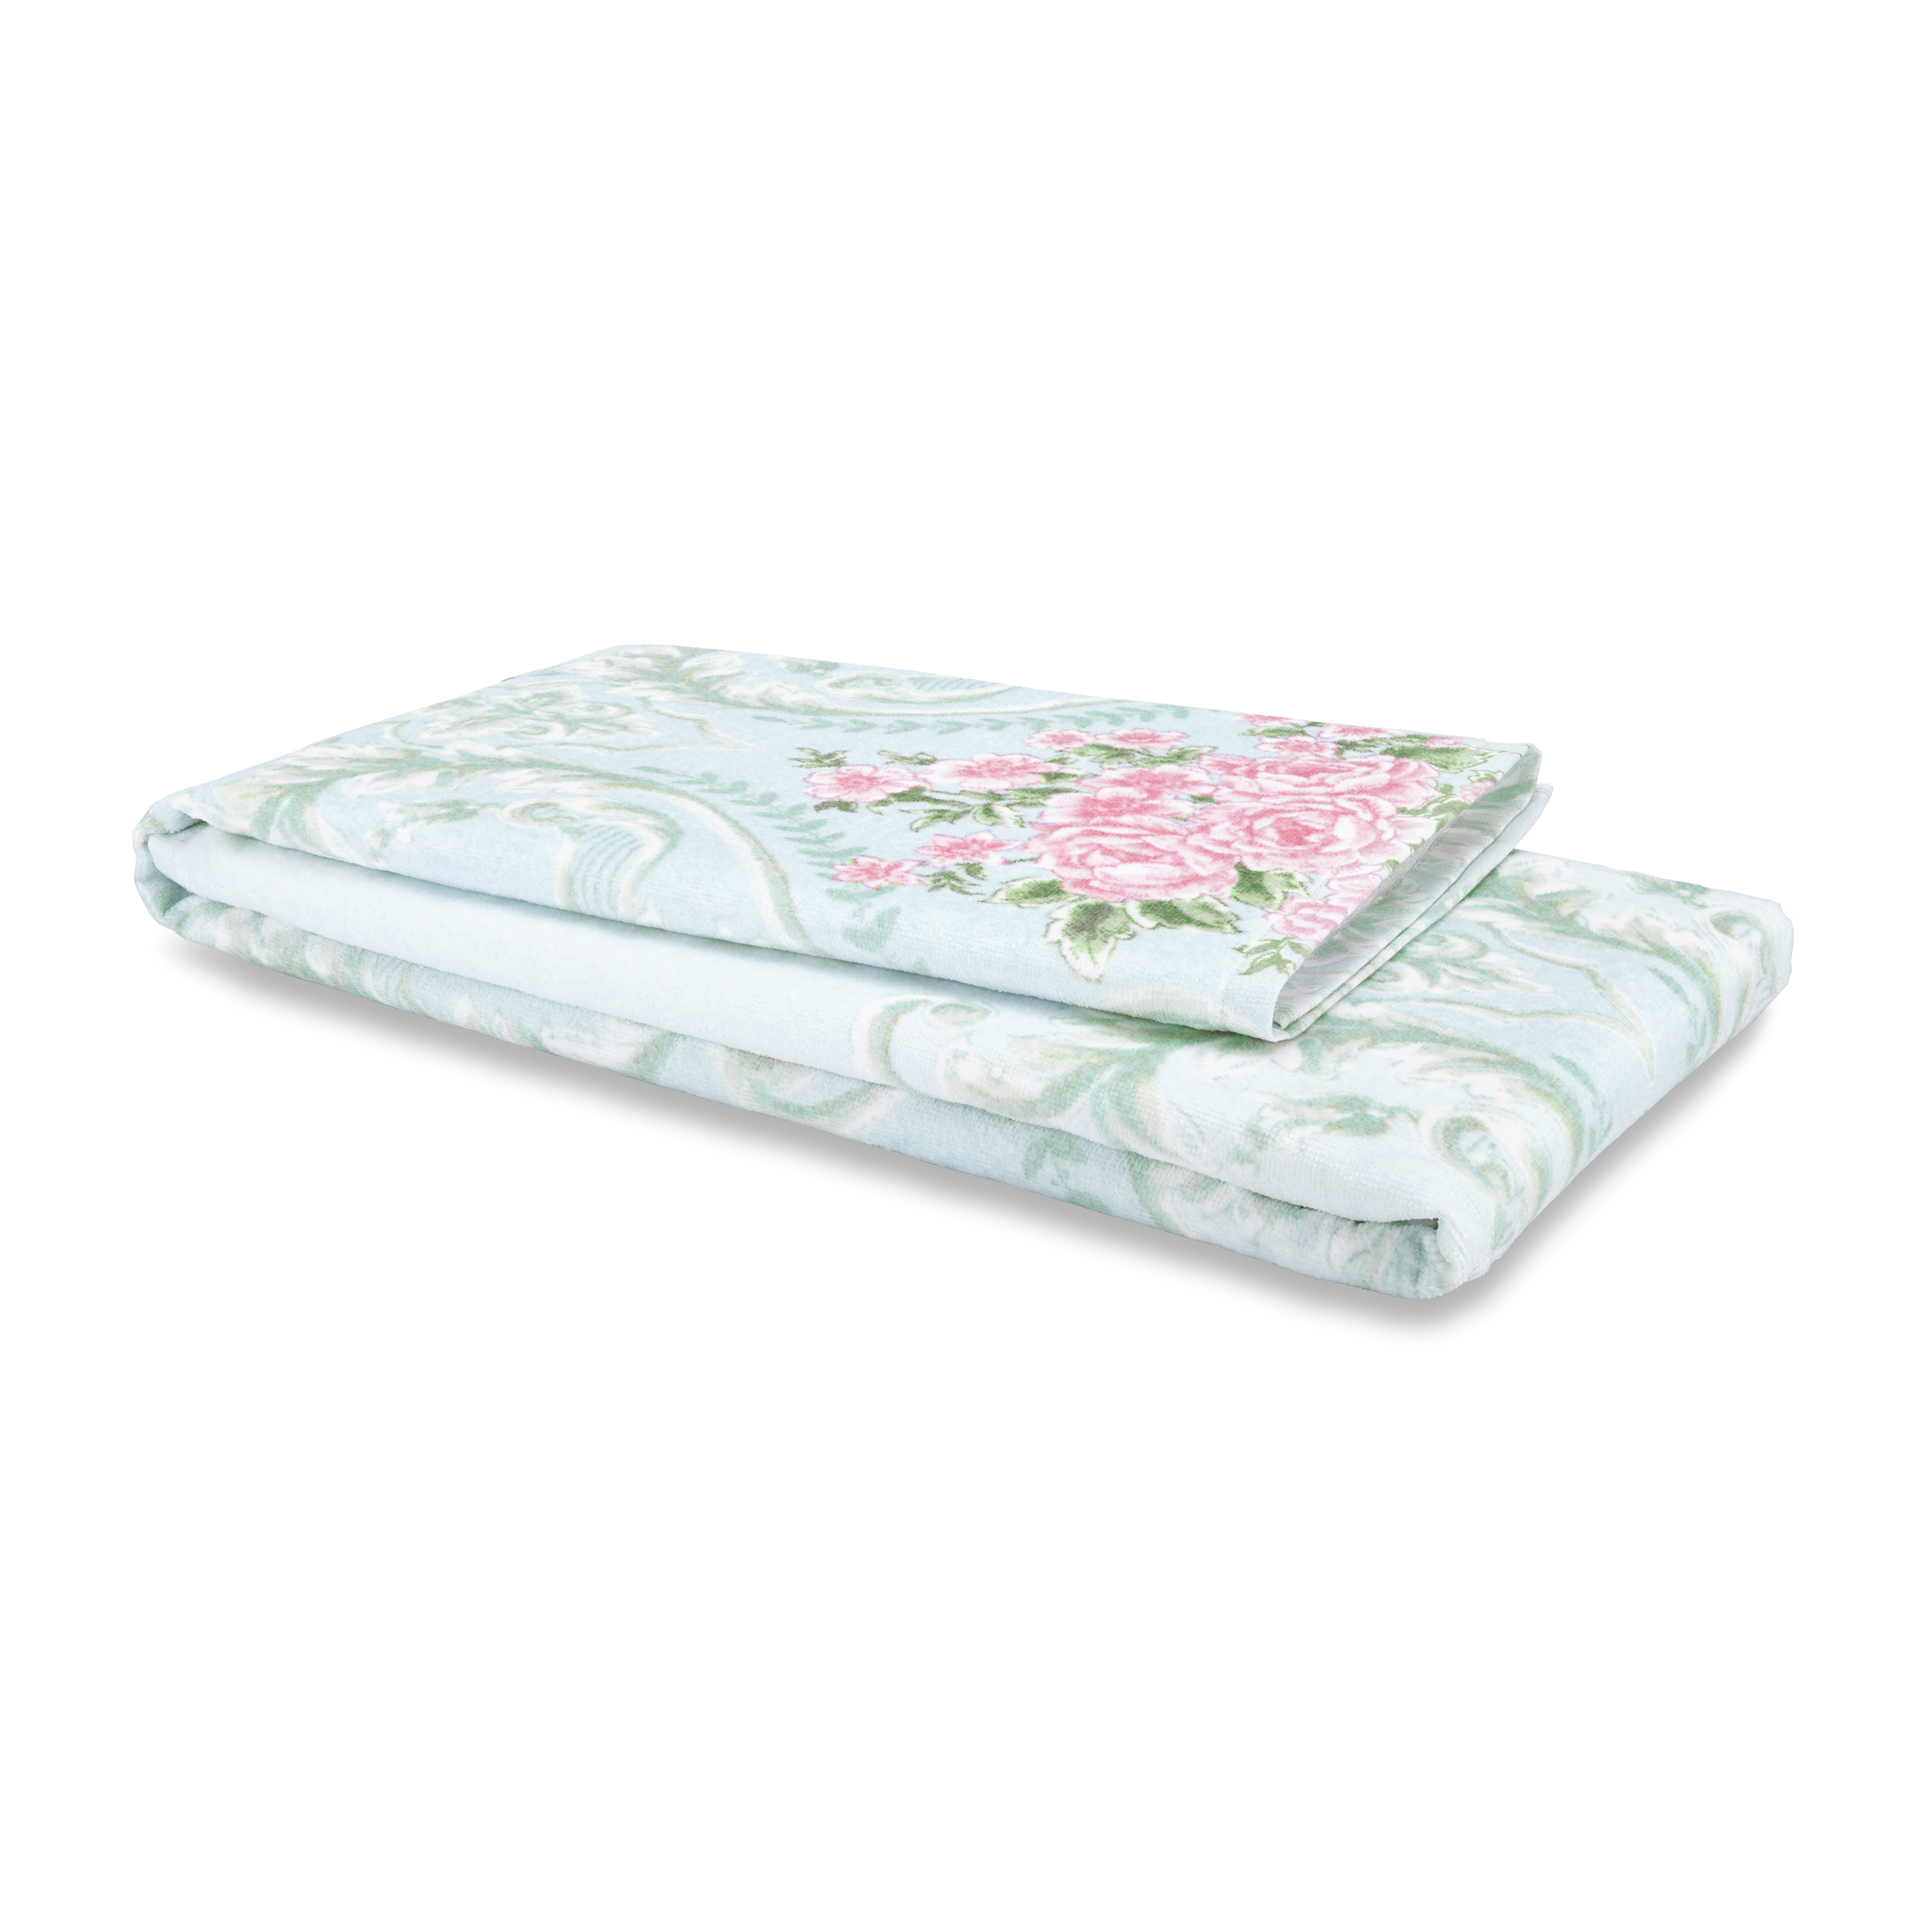 Spaces Atrium Cotton Double Bed Sheets in Skyblue Colour by Spaces